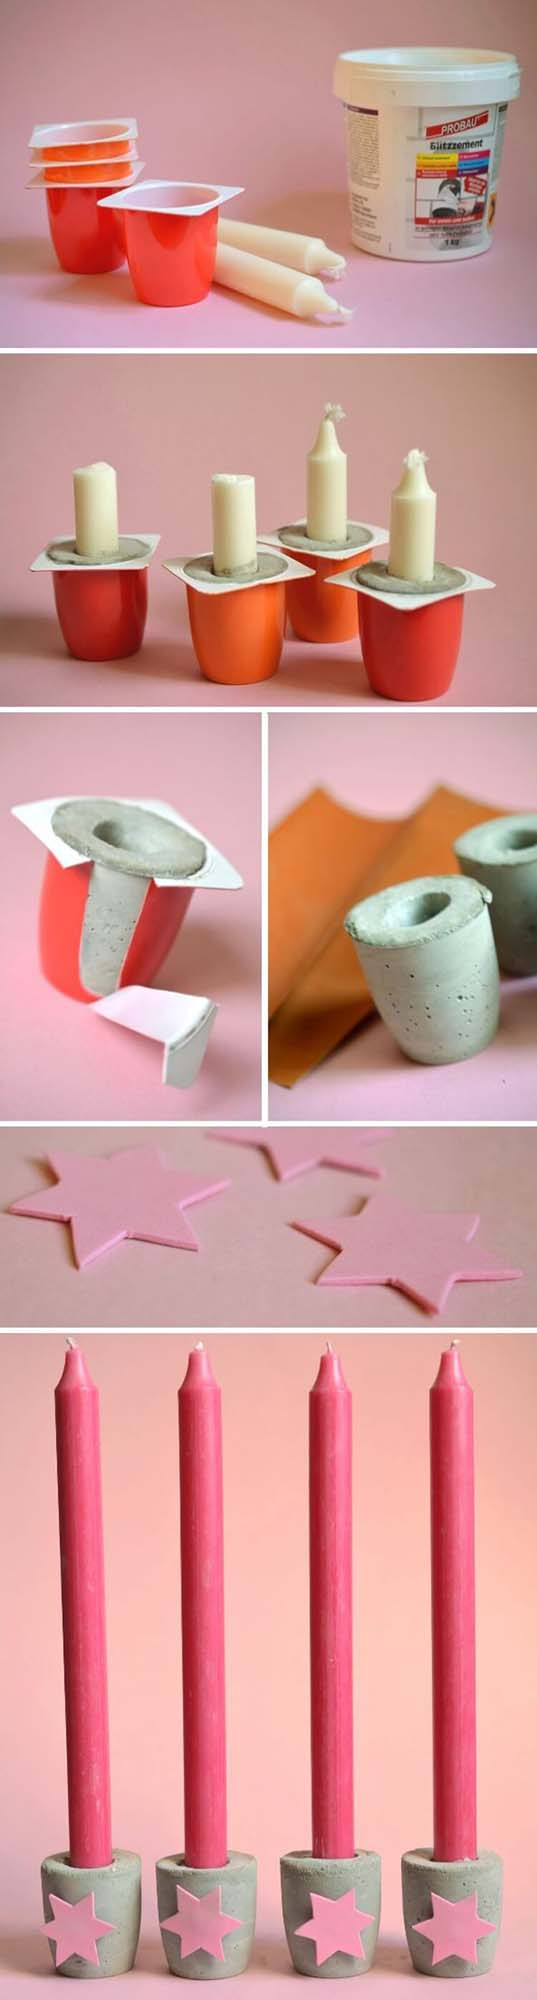 Recycled Pudding Cup Candleholder Craft #diy #weekendproject #decorhomeideas